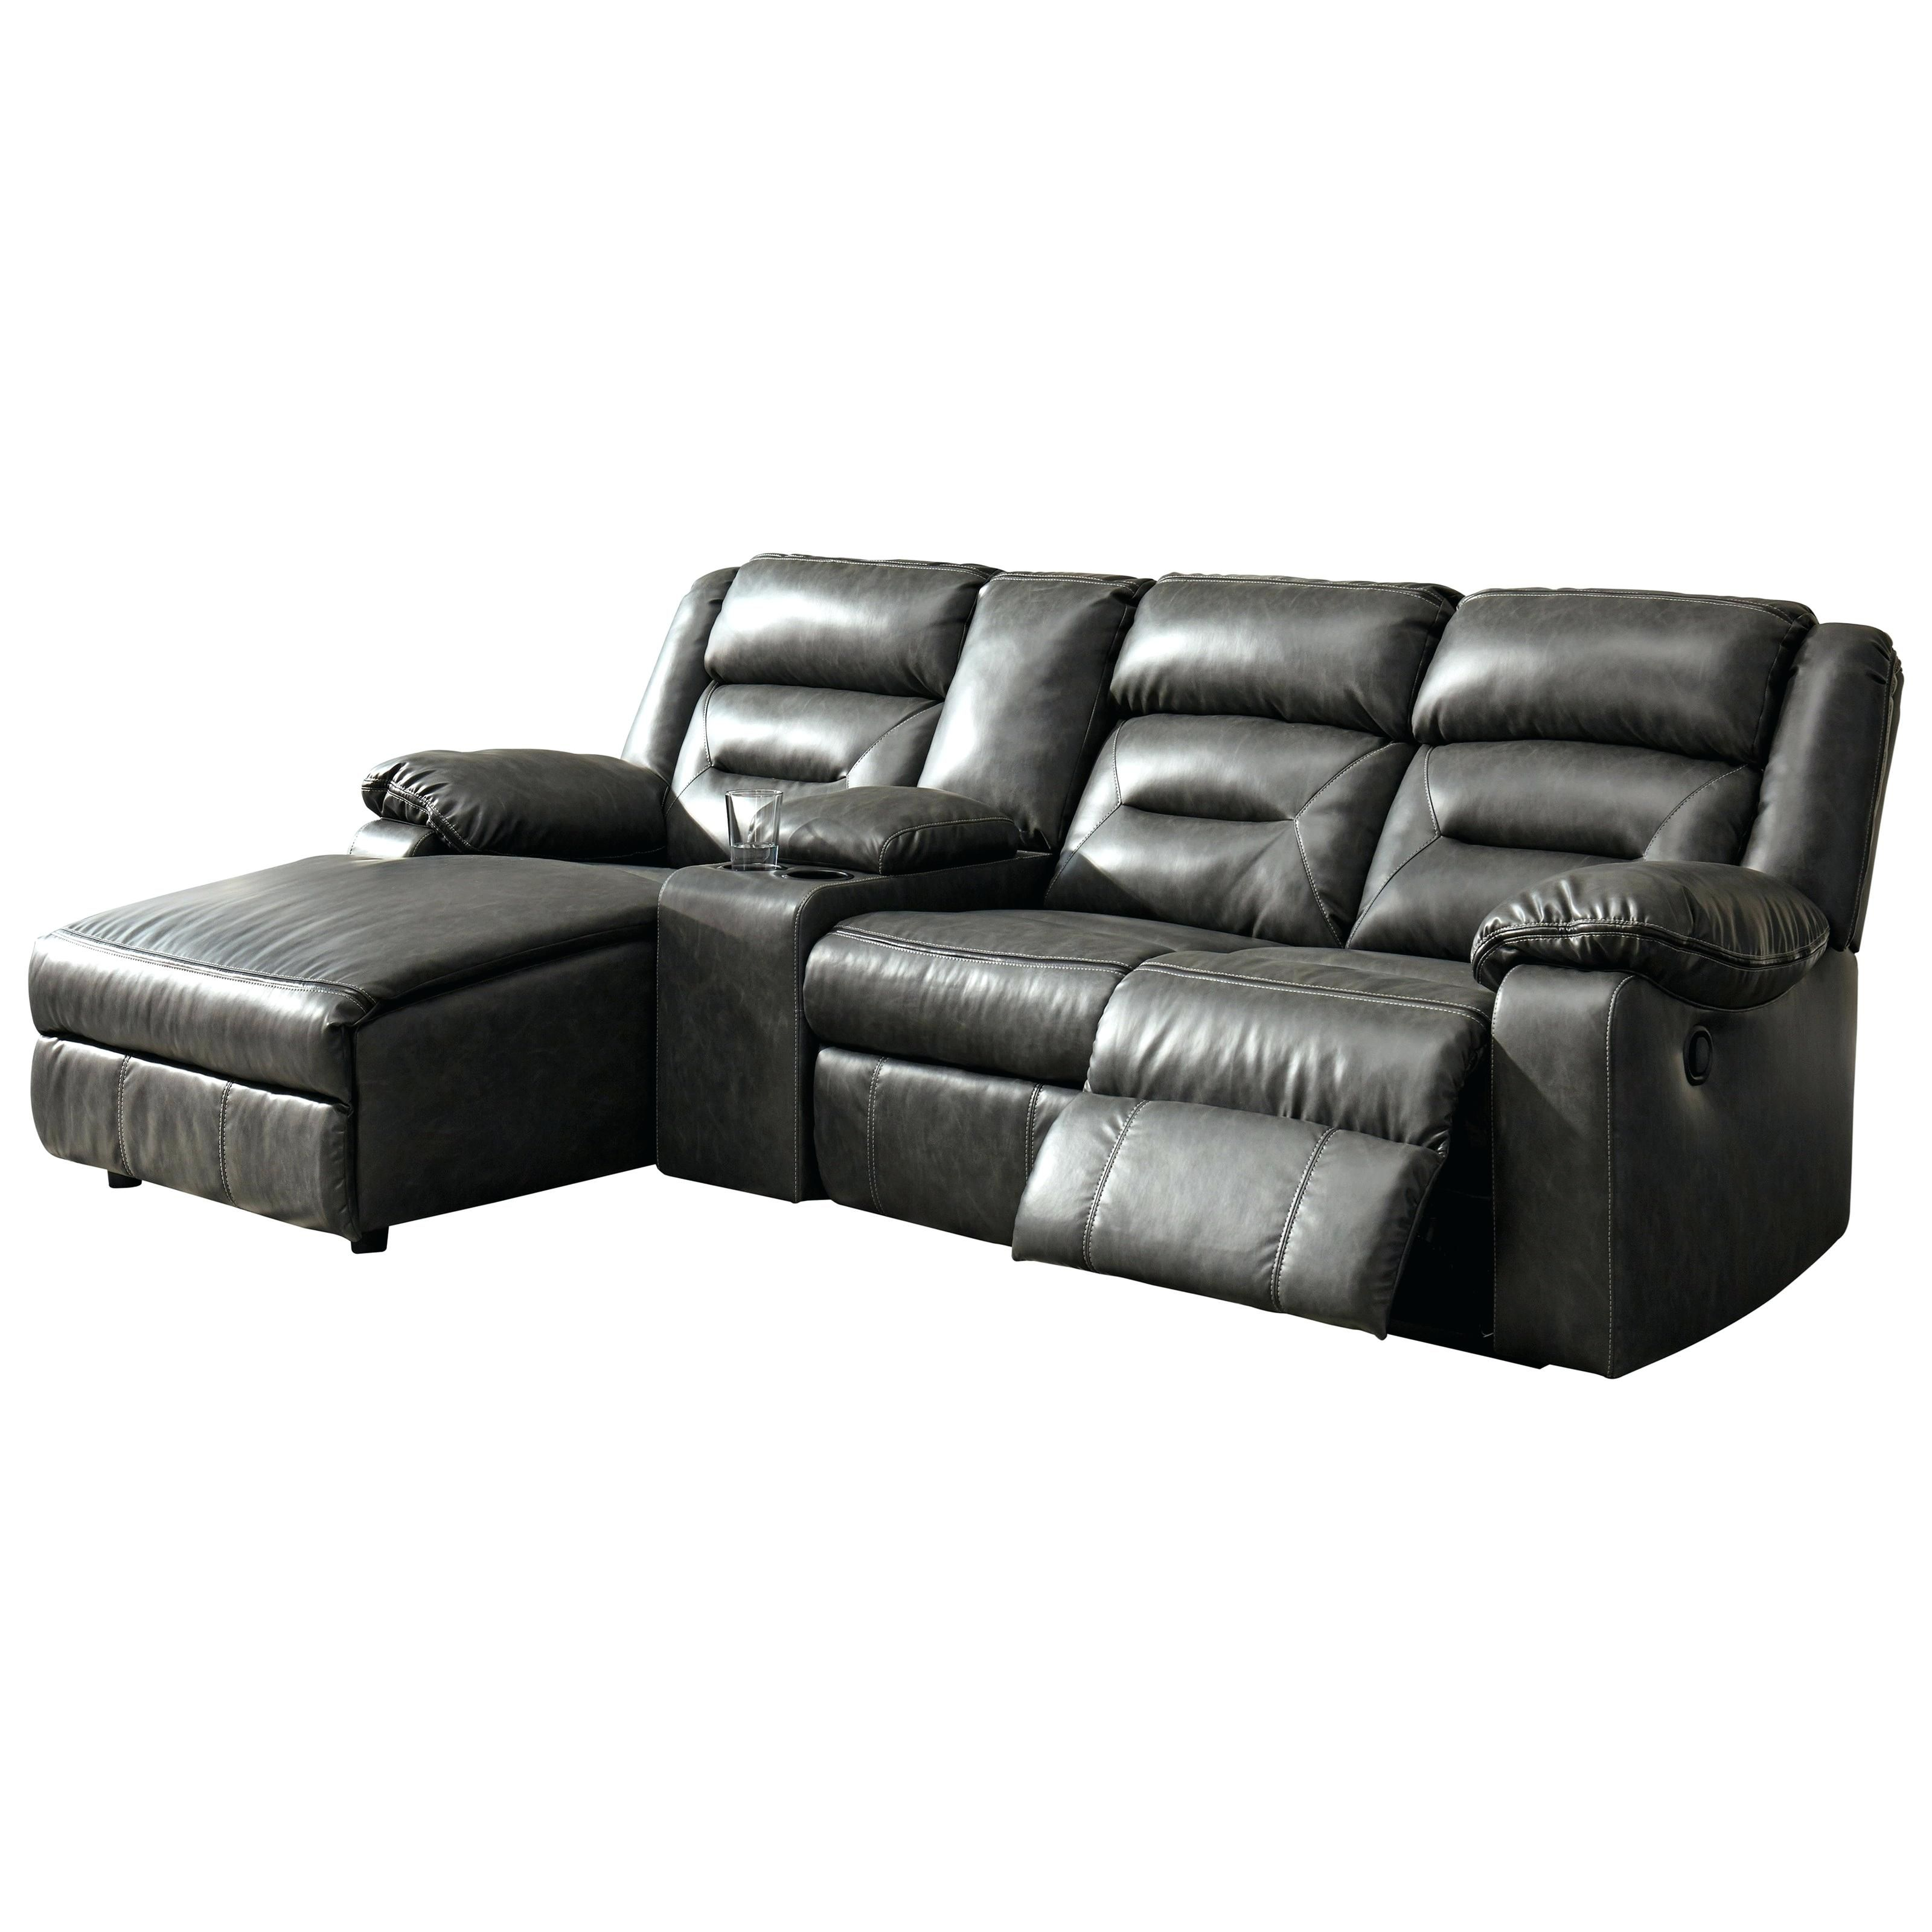 4 Piece Sectional Sofabest Of 4 Piece Sectional Sofa Or 15 Saunter 4 Pc Reclining Sectional S Sectional Sofa With Chaise Sectional Sofa